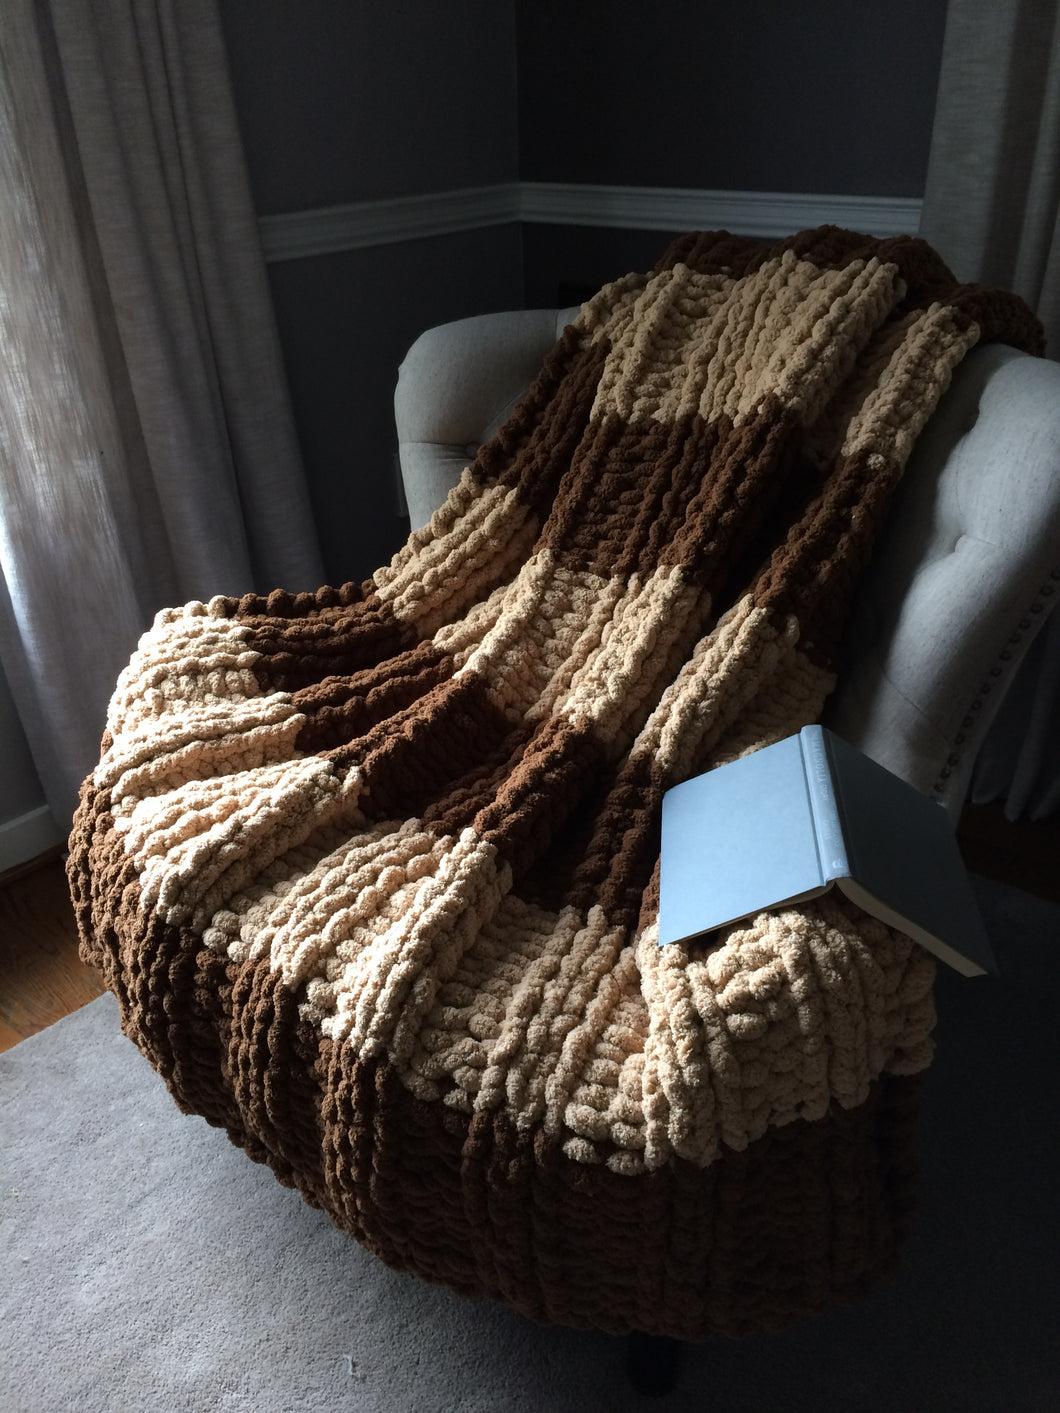 Chunky Knit Blanket | Brown Striped Throw Blanket - Hands On For Homemade